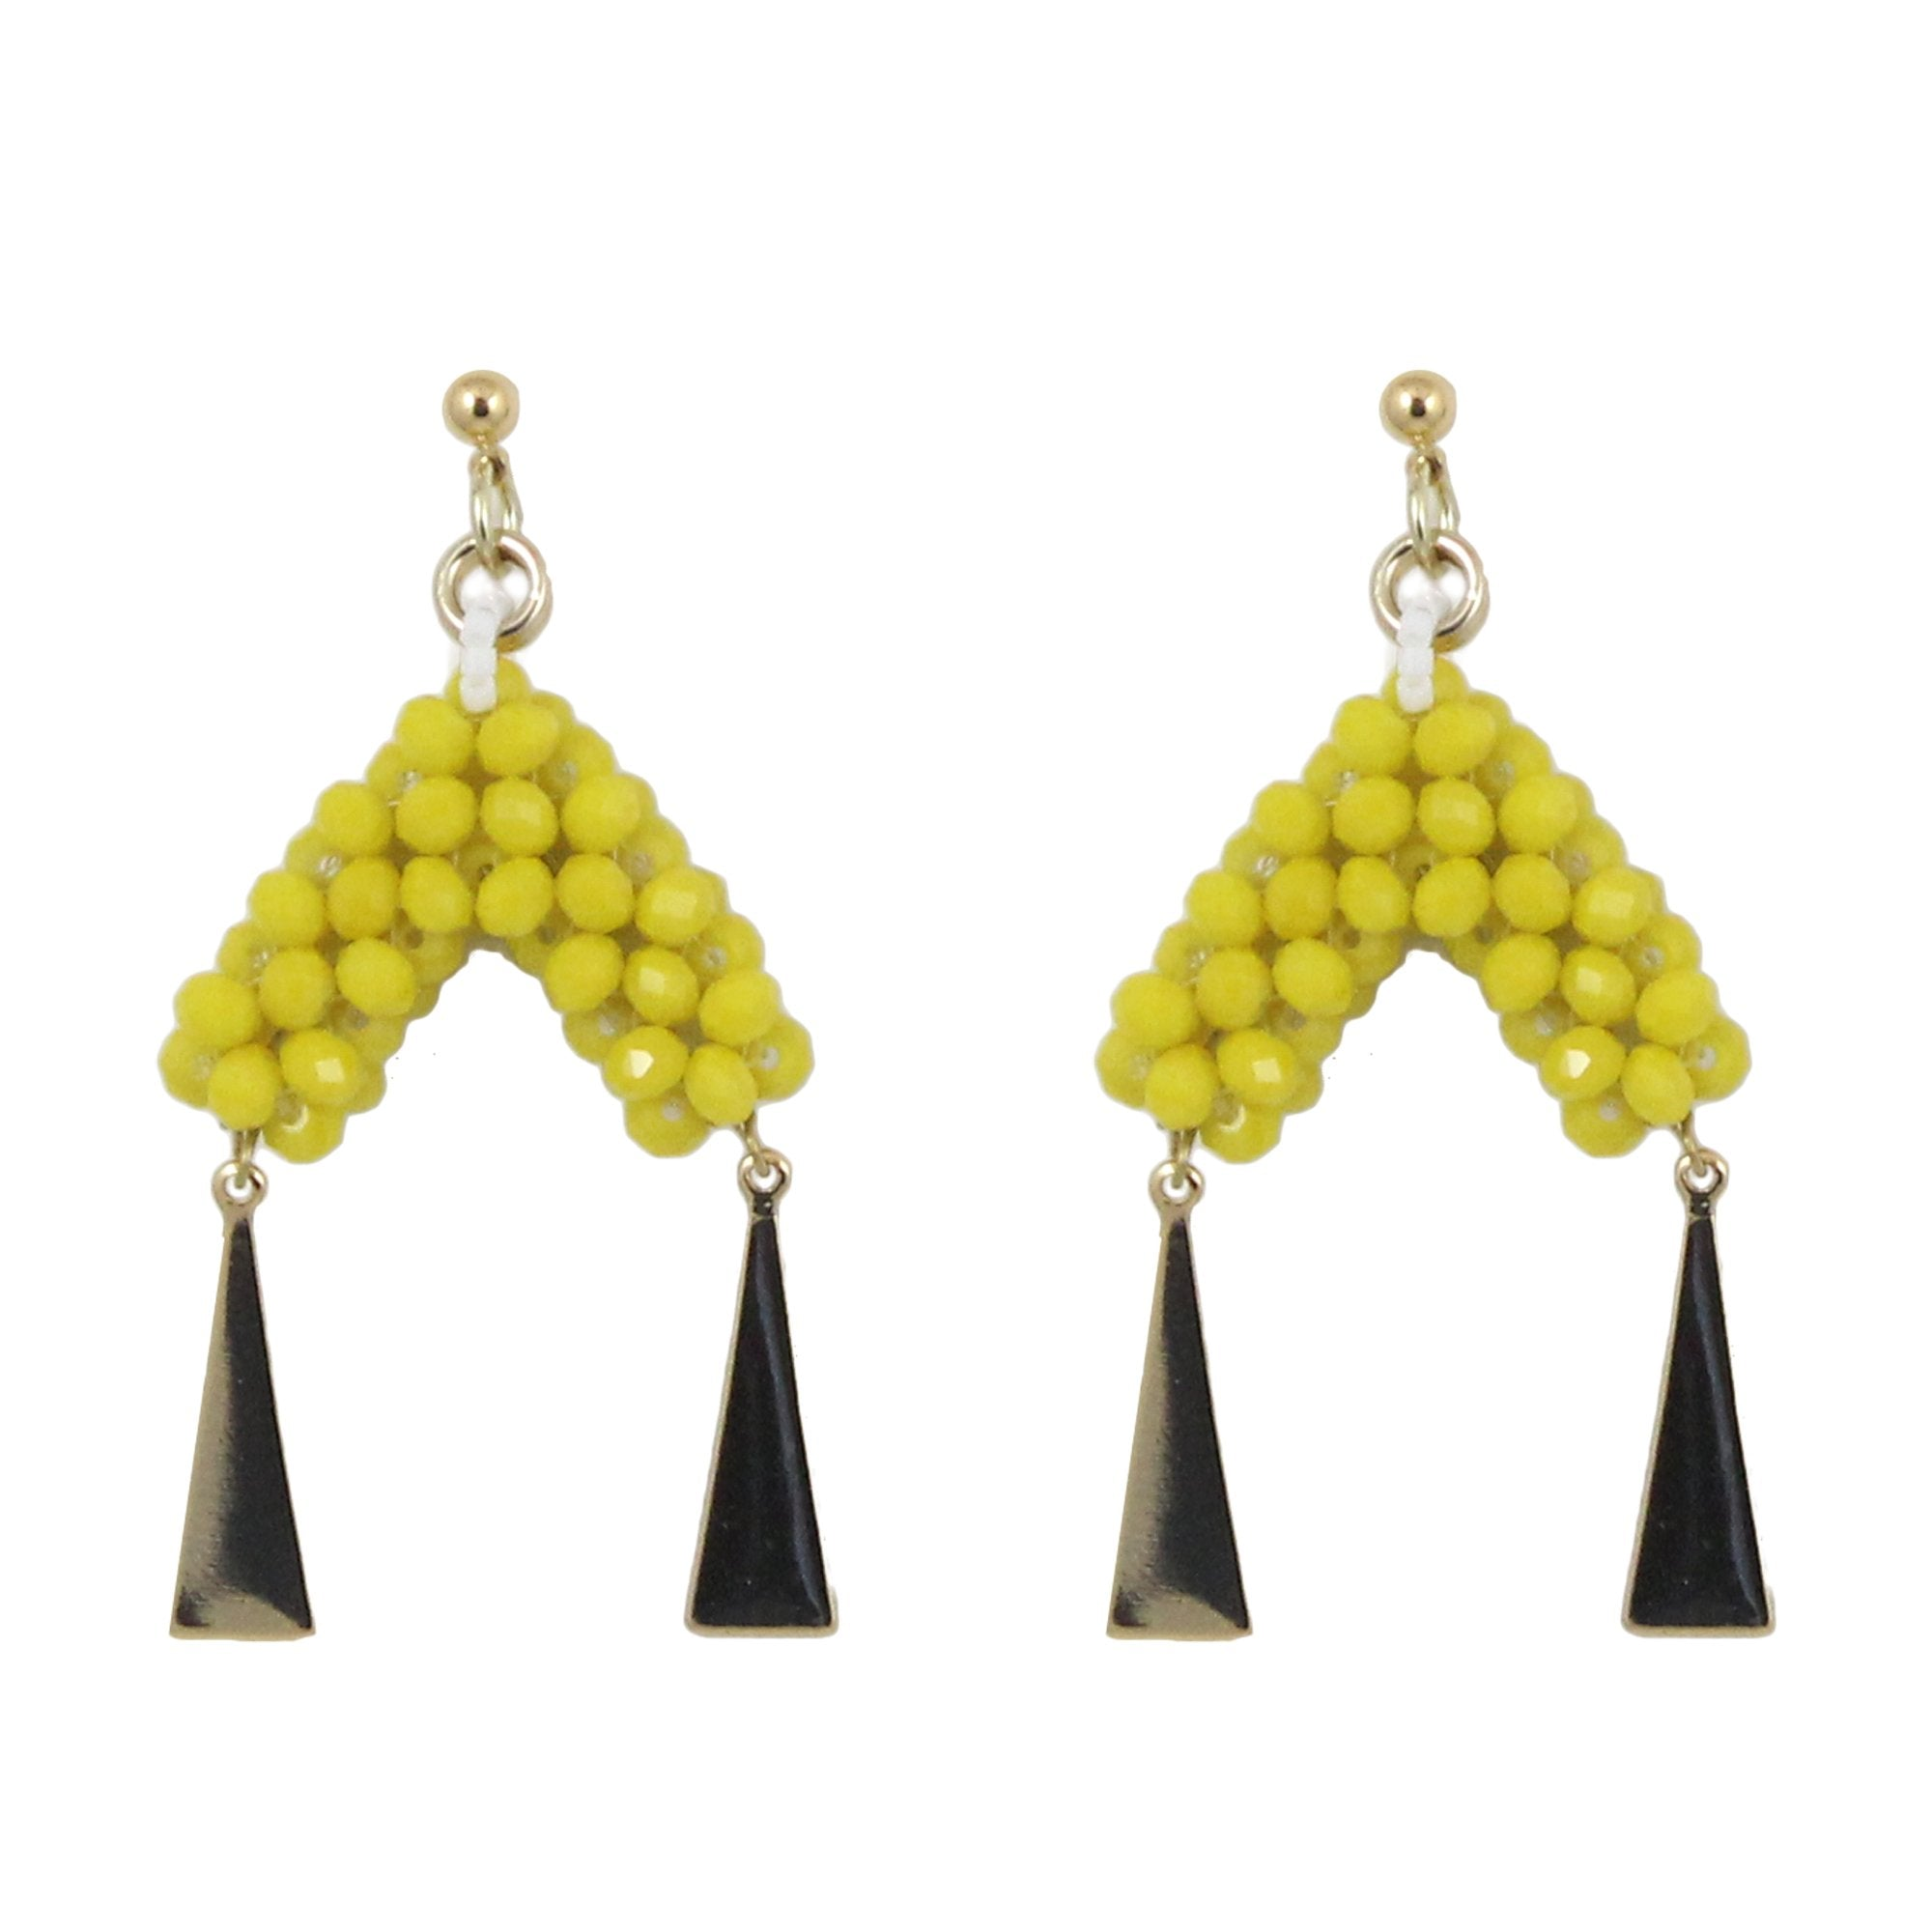 VOLLA earrings